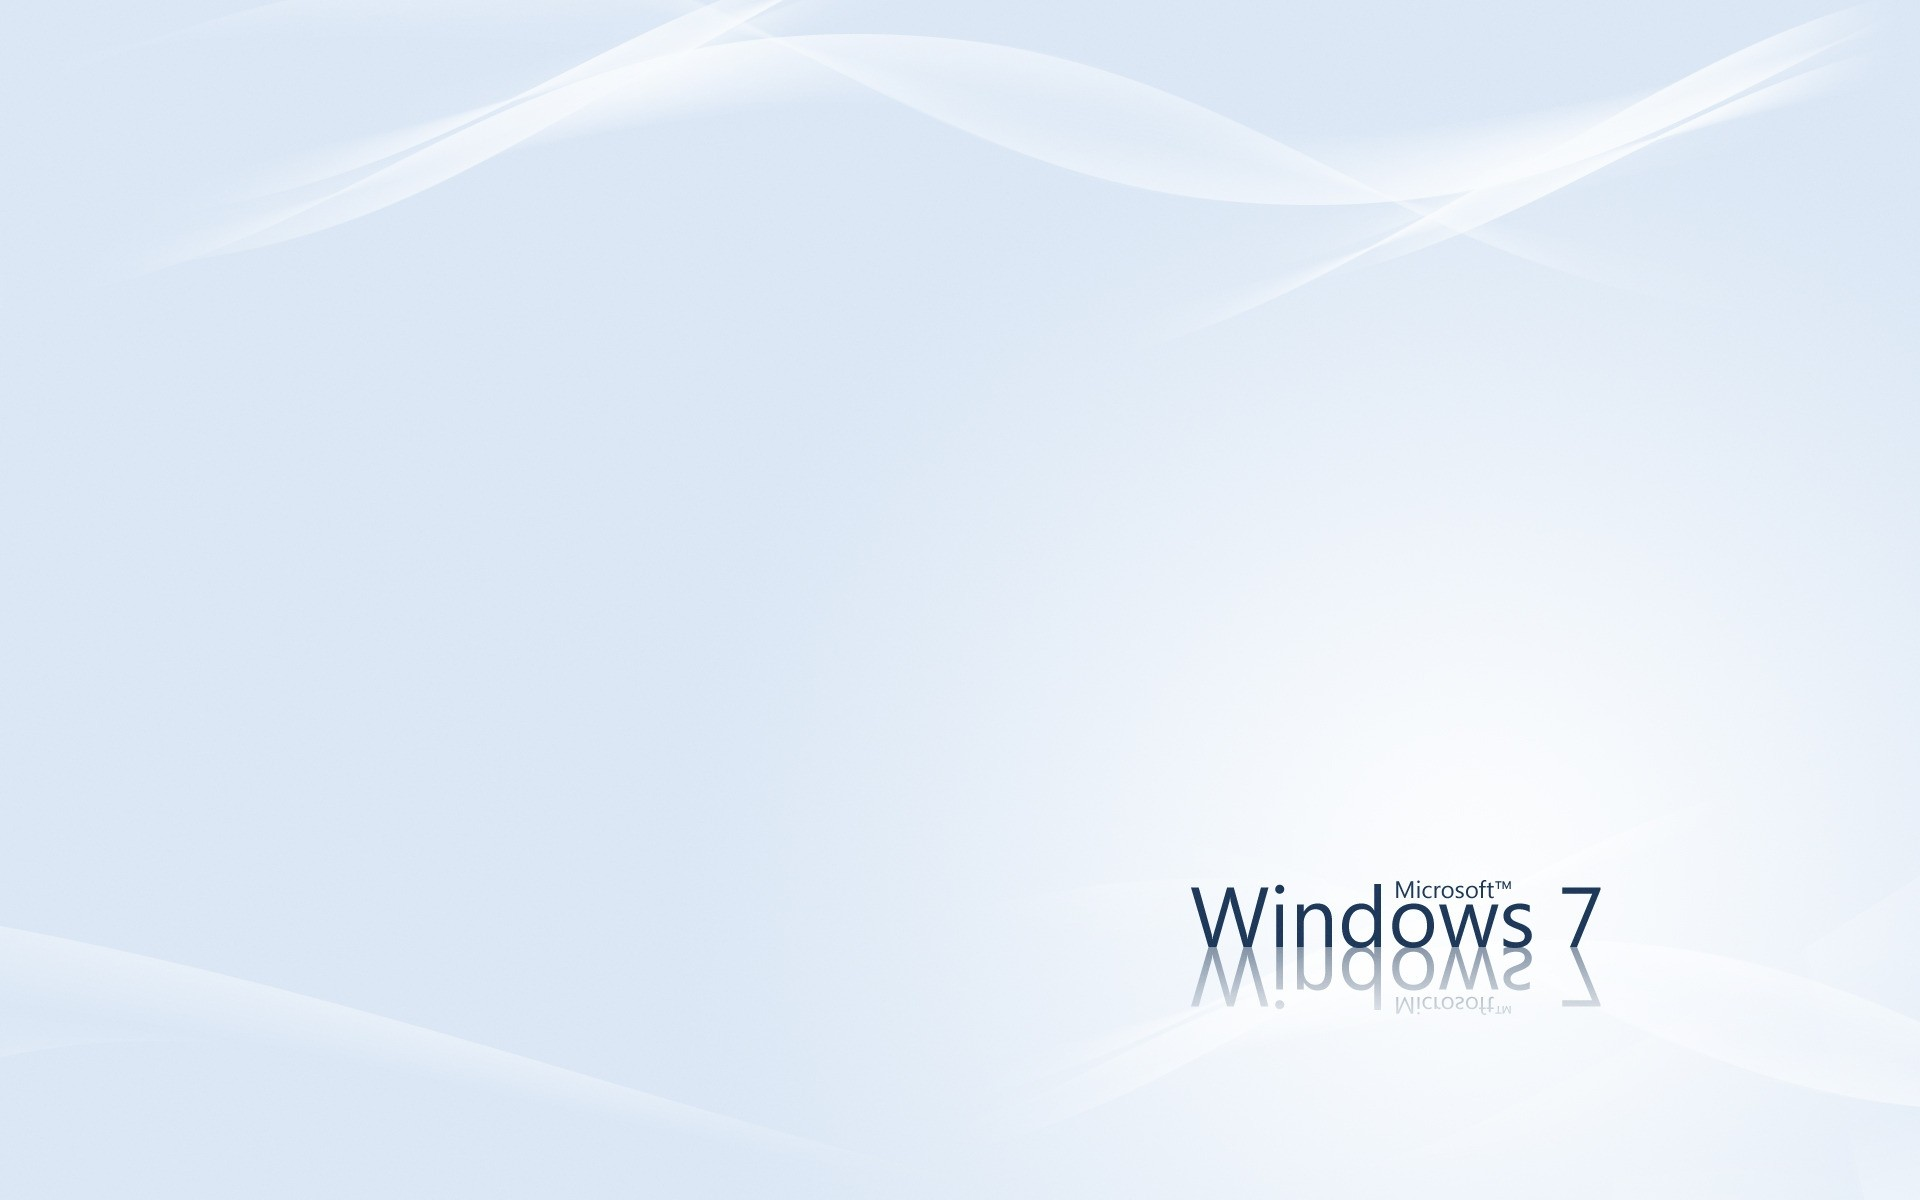 Windows 7 Bright Desktop Wallpapers For Free